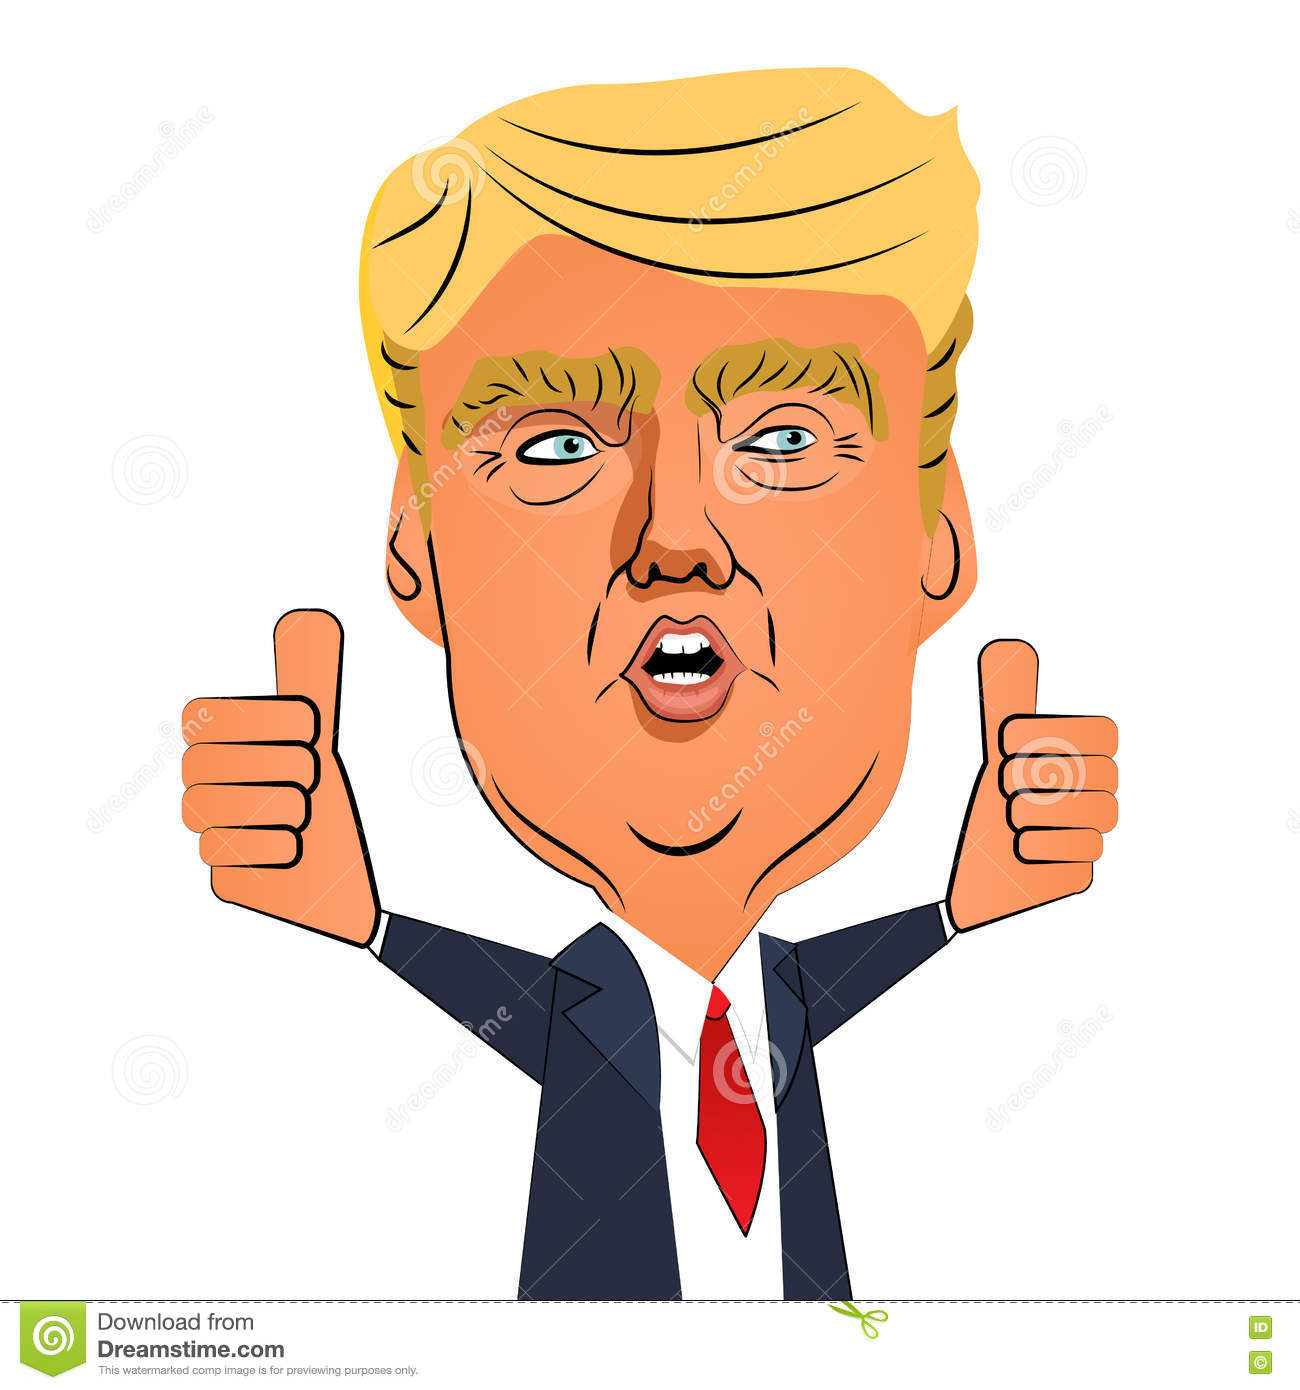 August 10, 2016: Donald Trump thumb up Stock Photos